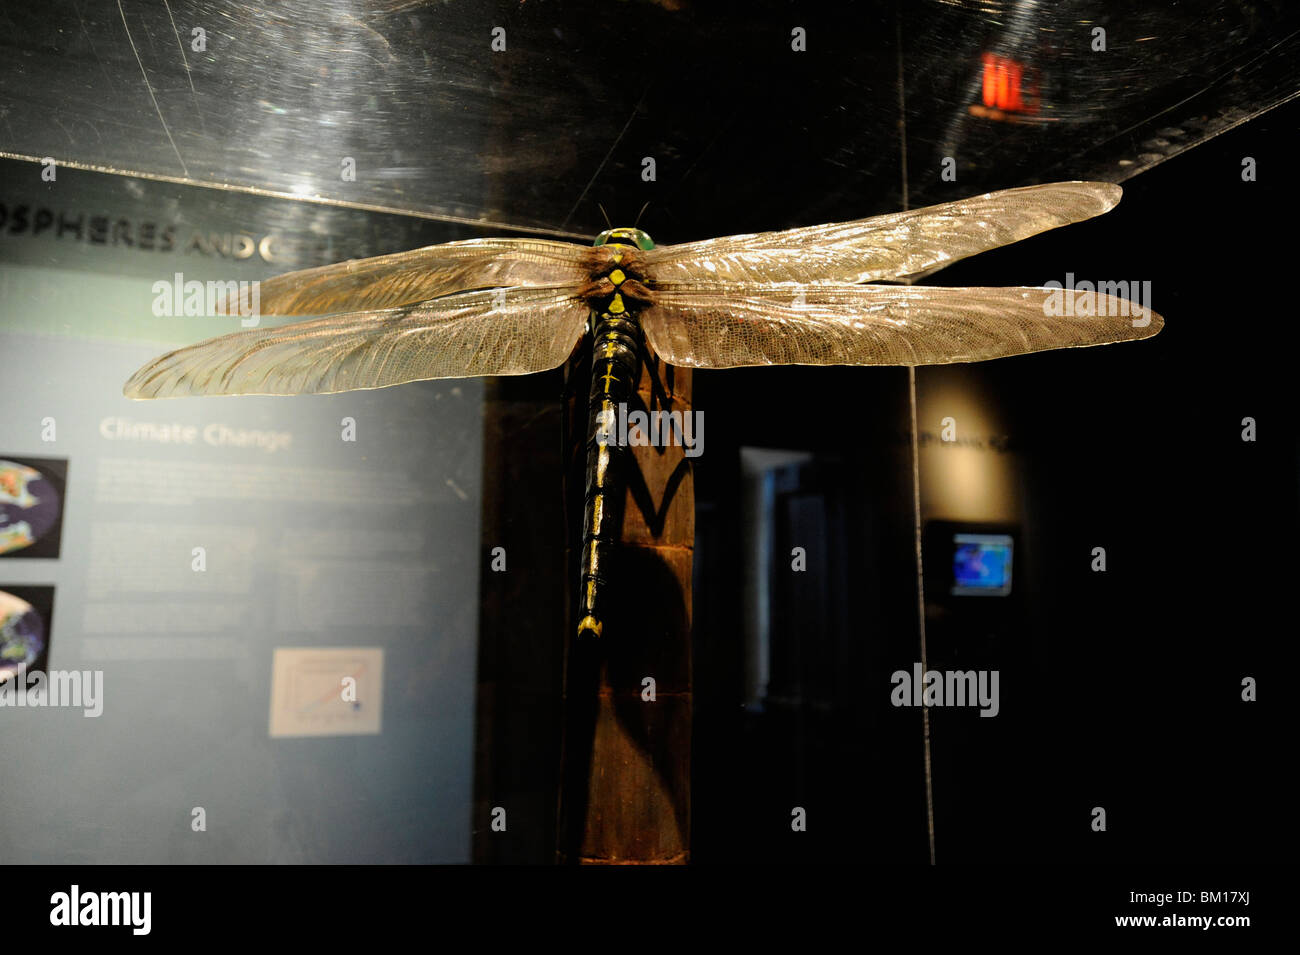 Peabody Museum, New Haven, Connecticut. Meganeuropsis giant dragonfly from Carboniferous Period. Stock Photo